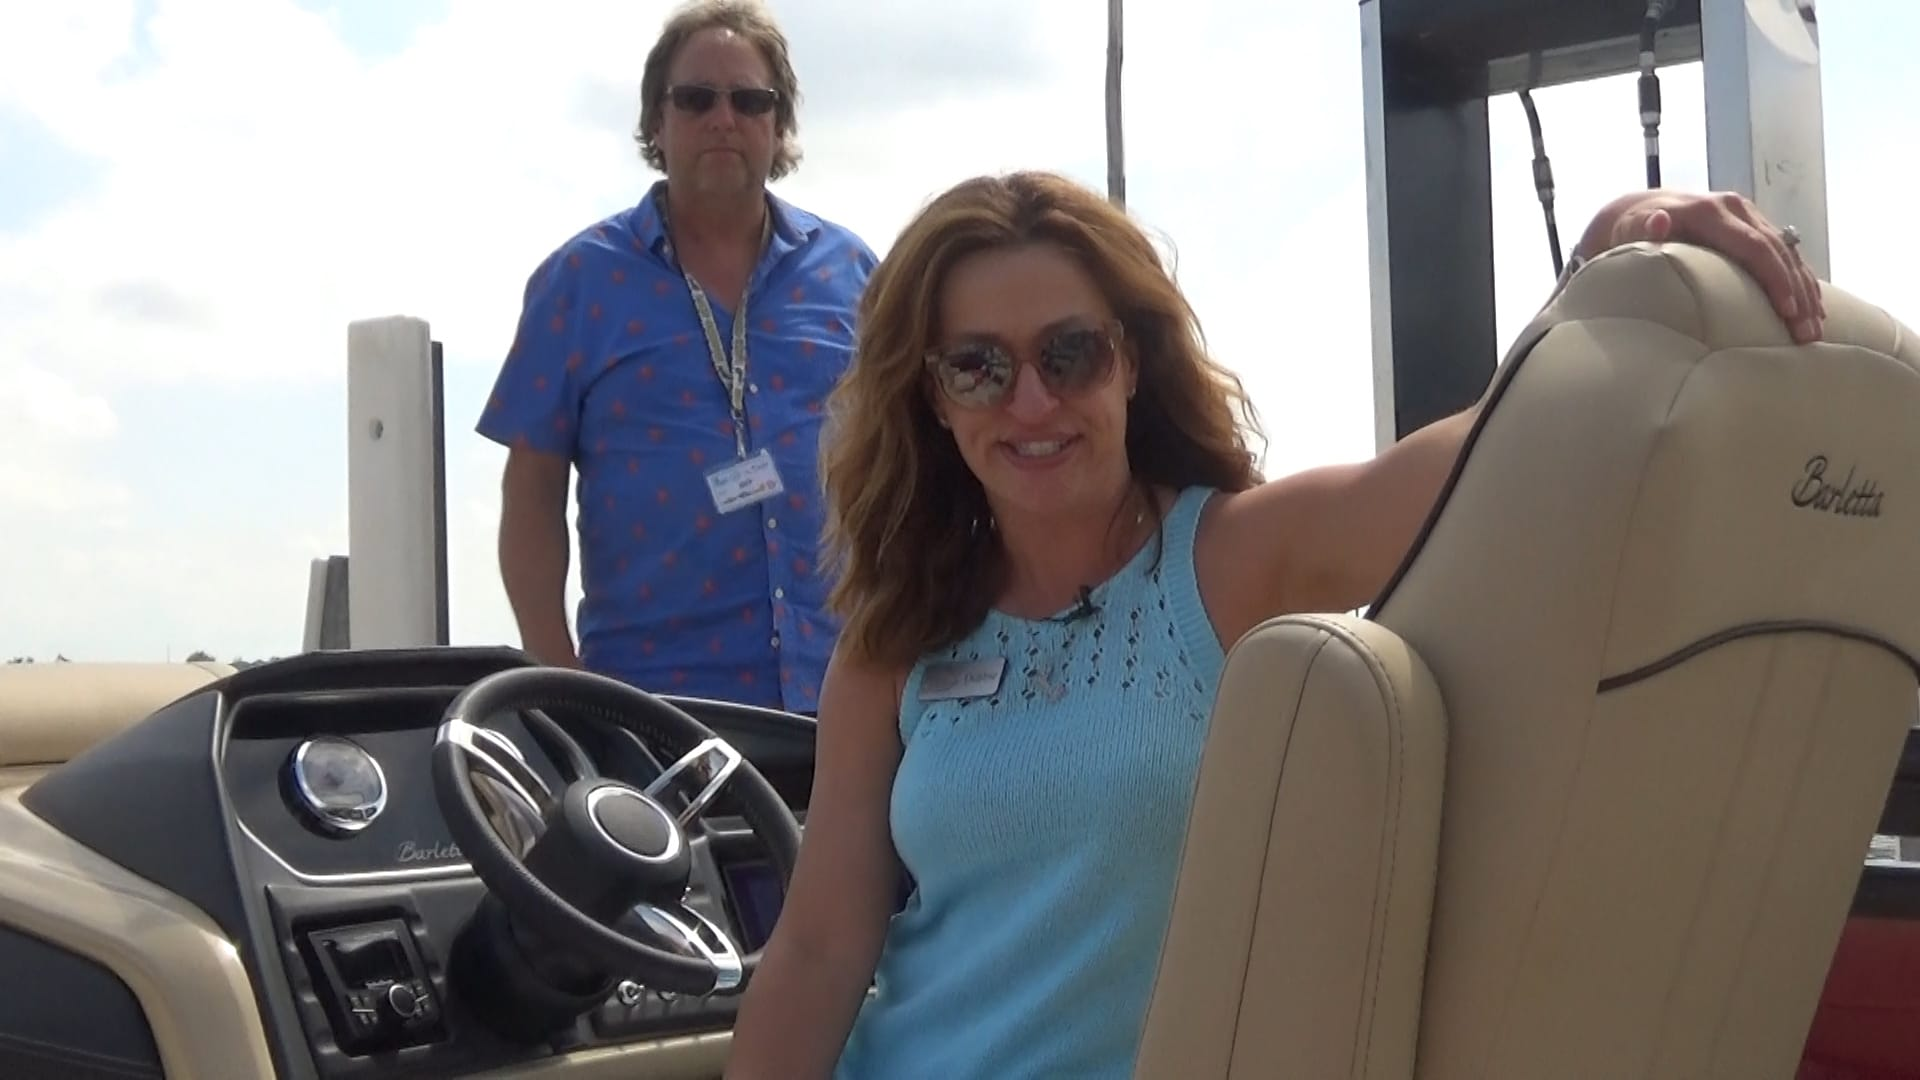 MDTV Entertainment Report: In Water Boat Show Weekend